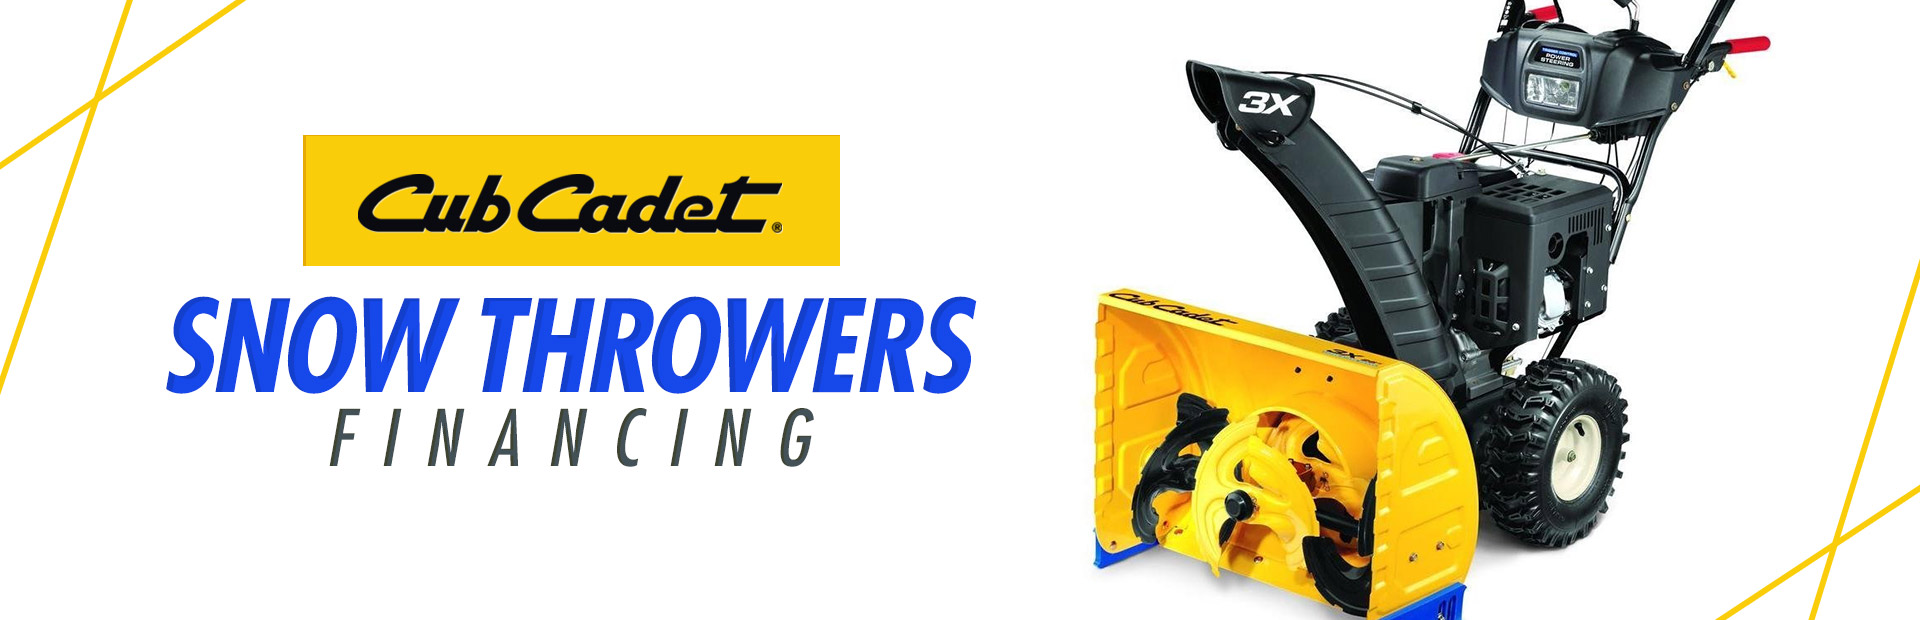 Cub Cadet: Snow Throwers Financing